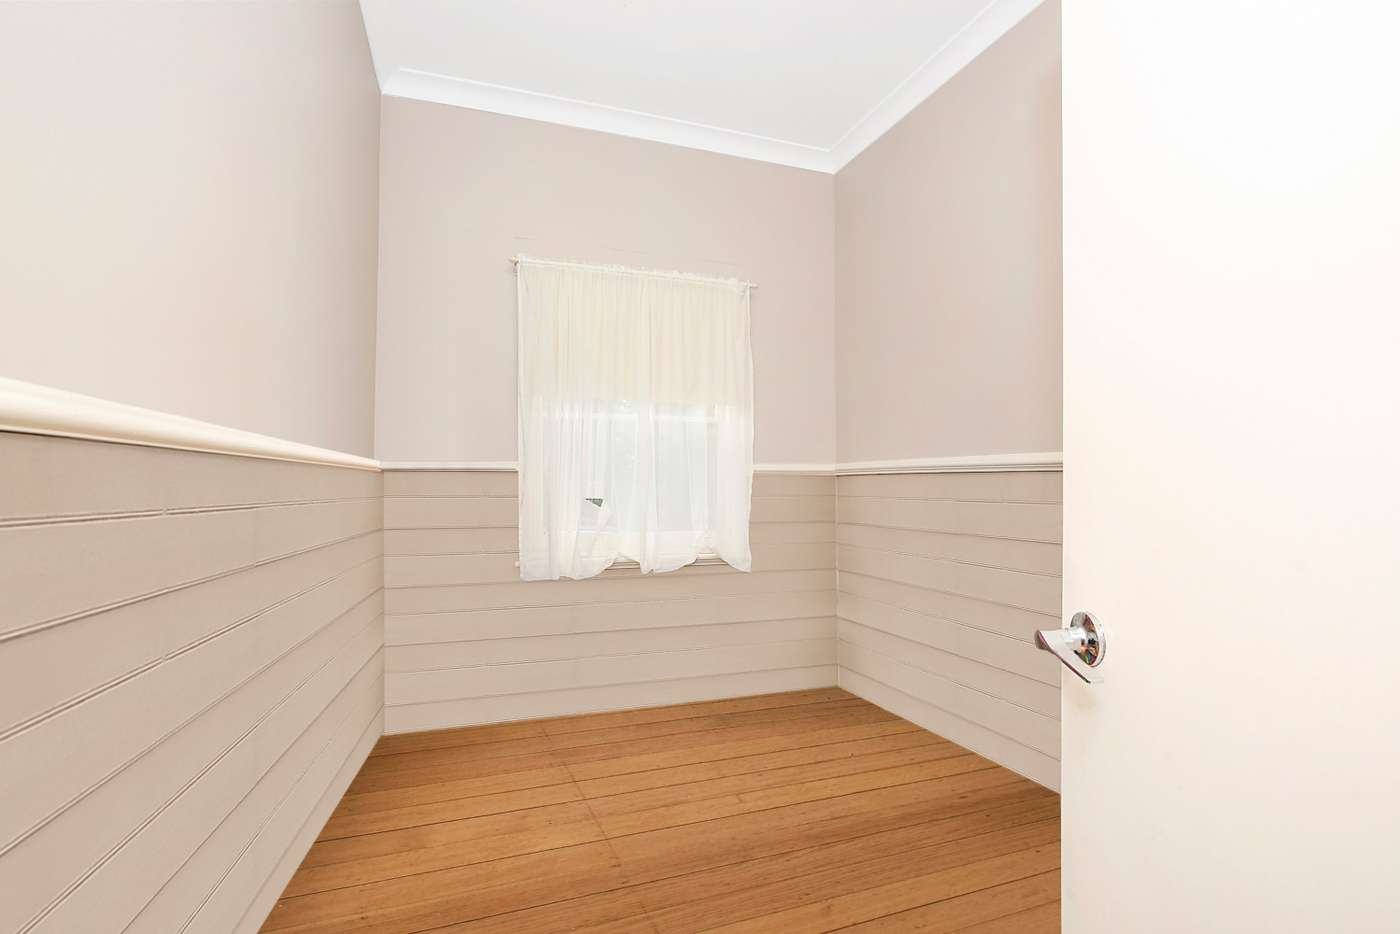 Sixth view of Homely house listing, 21 Henderson Street, Camperdown VIC 3260